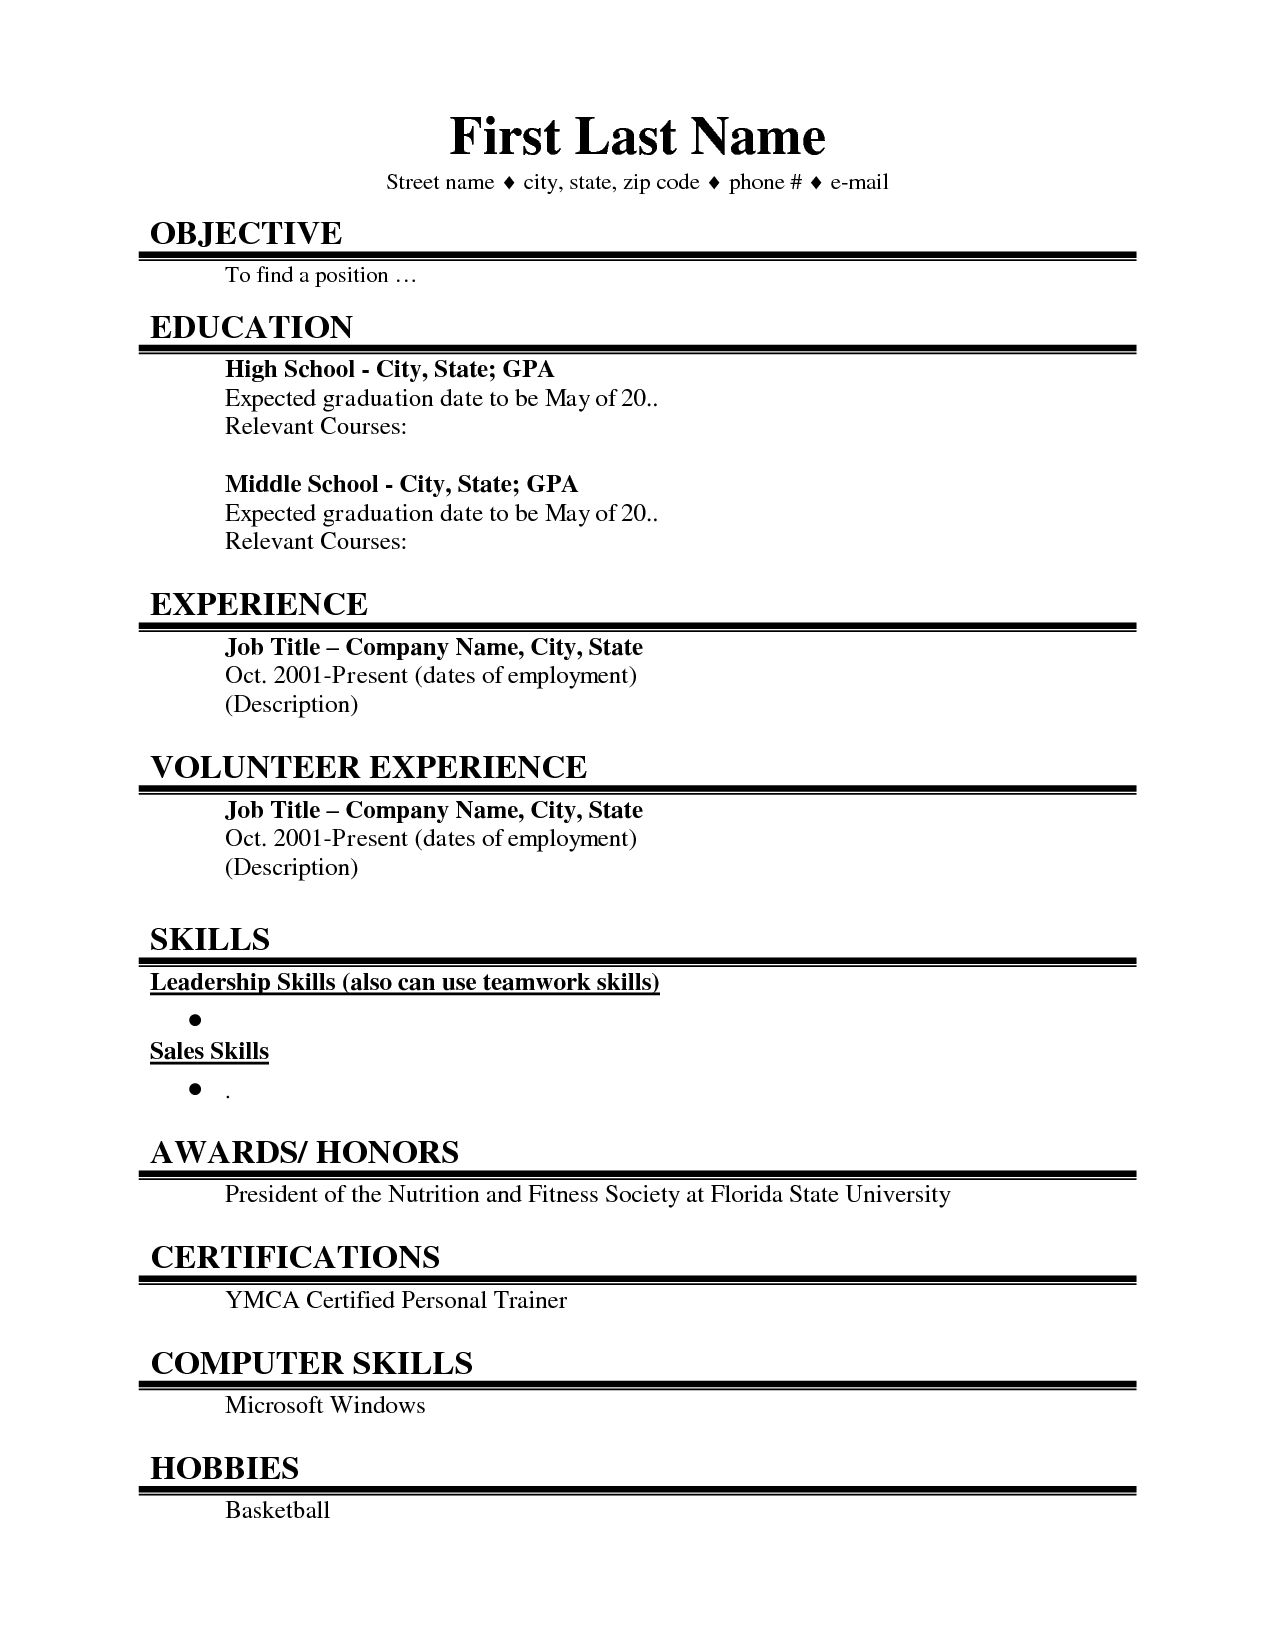 First Job Resume Google Search Resume Pinterest Job Resume